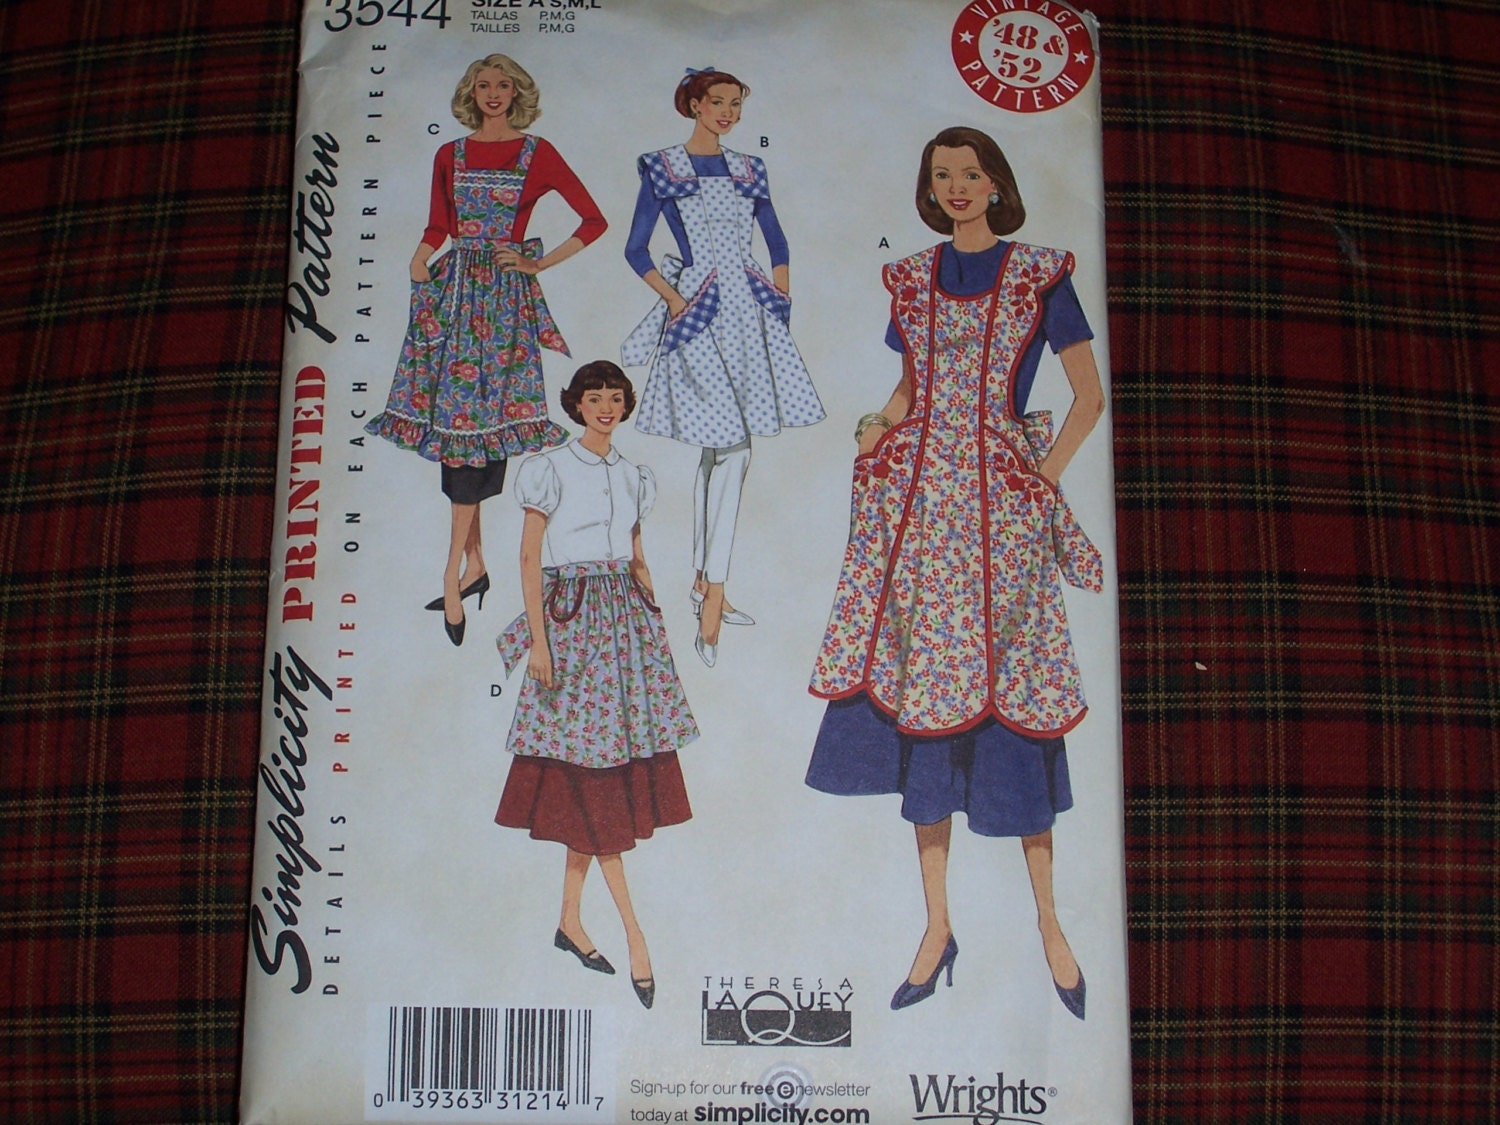 Simplicity 3544 Reproduction From Vintage By Mirandasroom